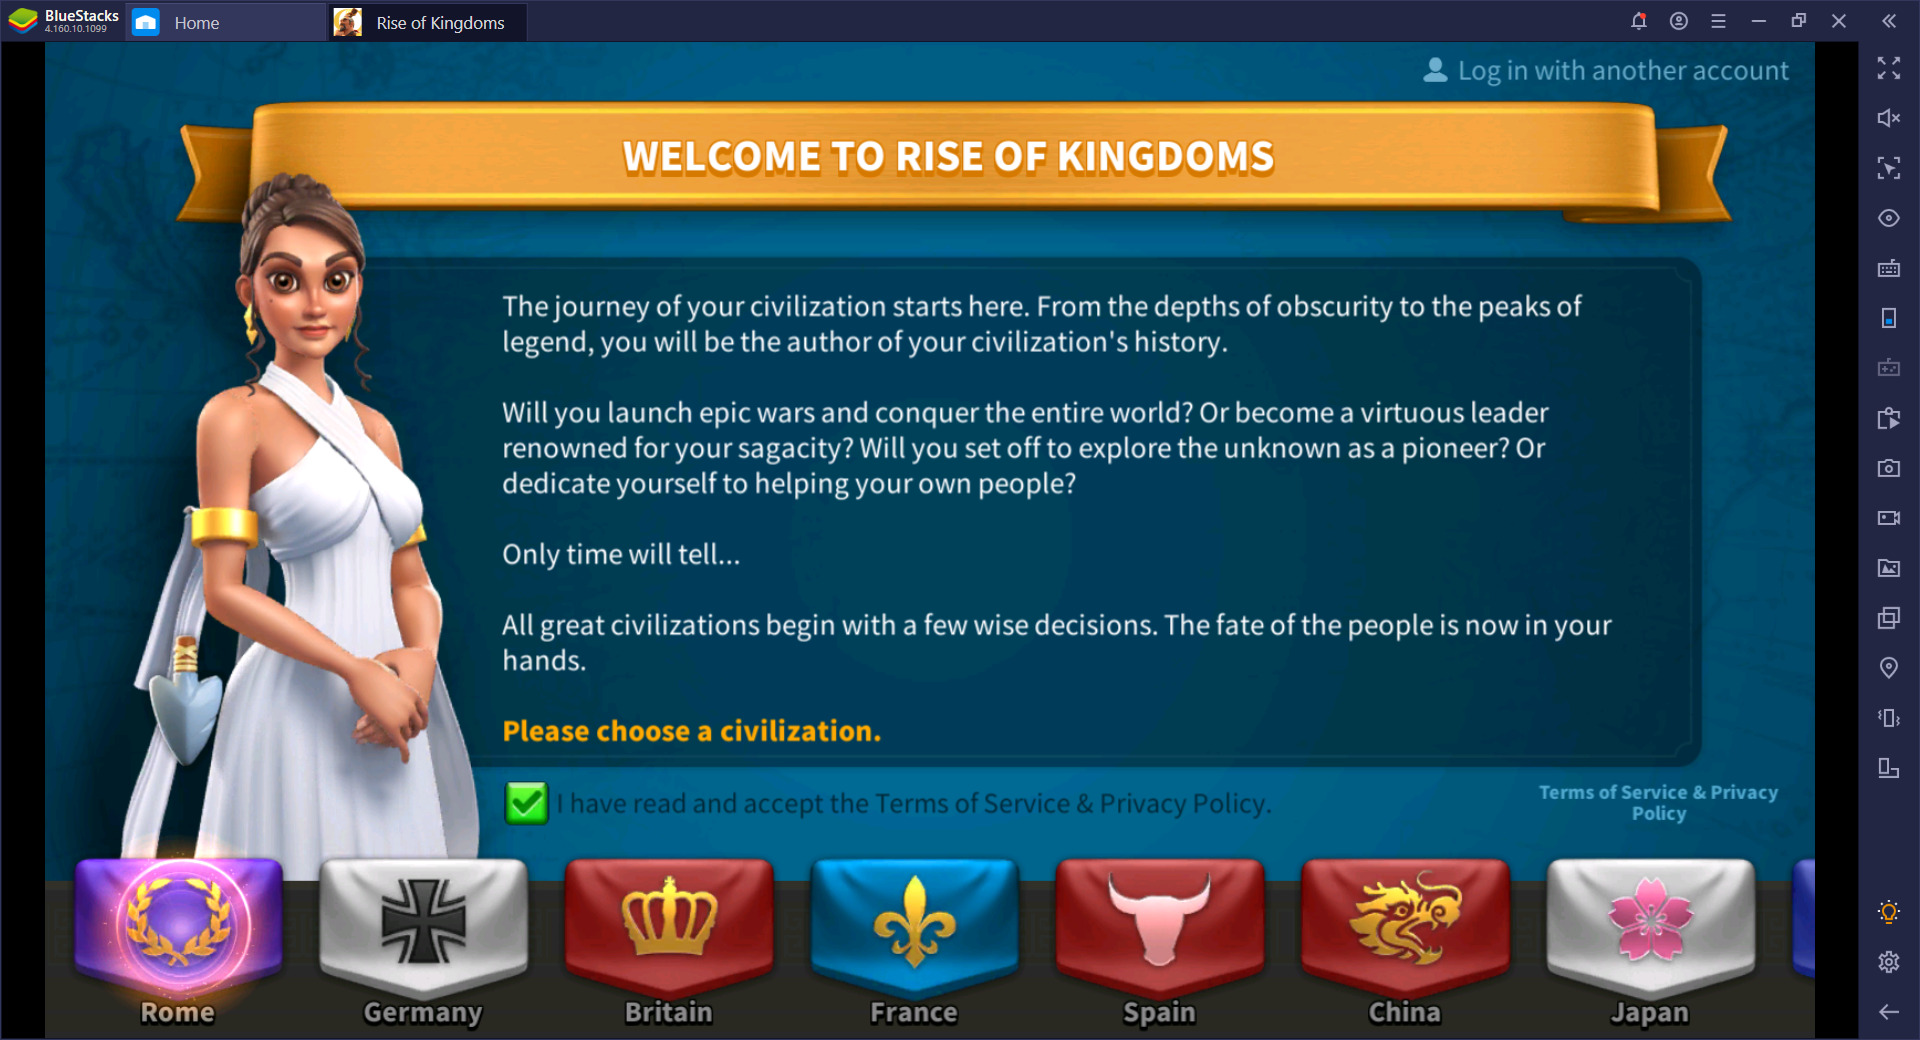 A Beginner's Know-all Guide to Rise of Kingdoms